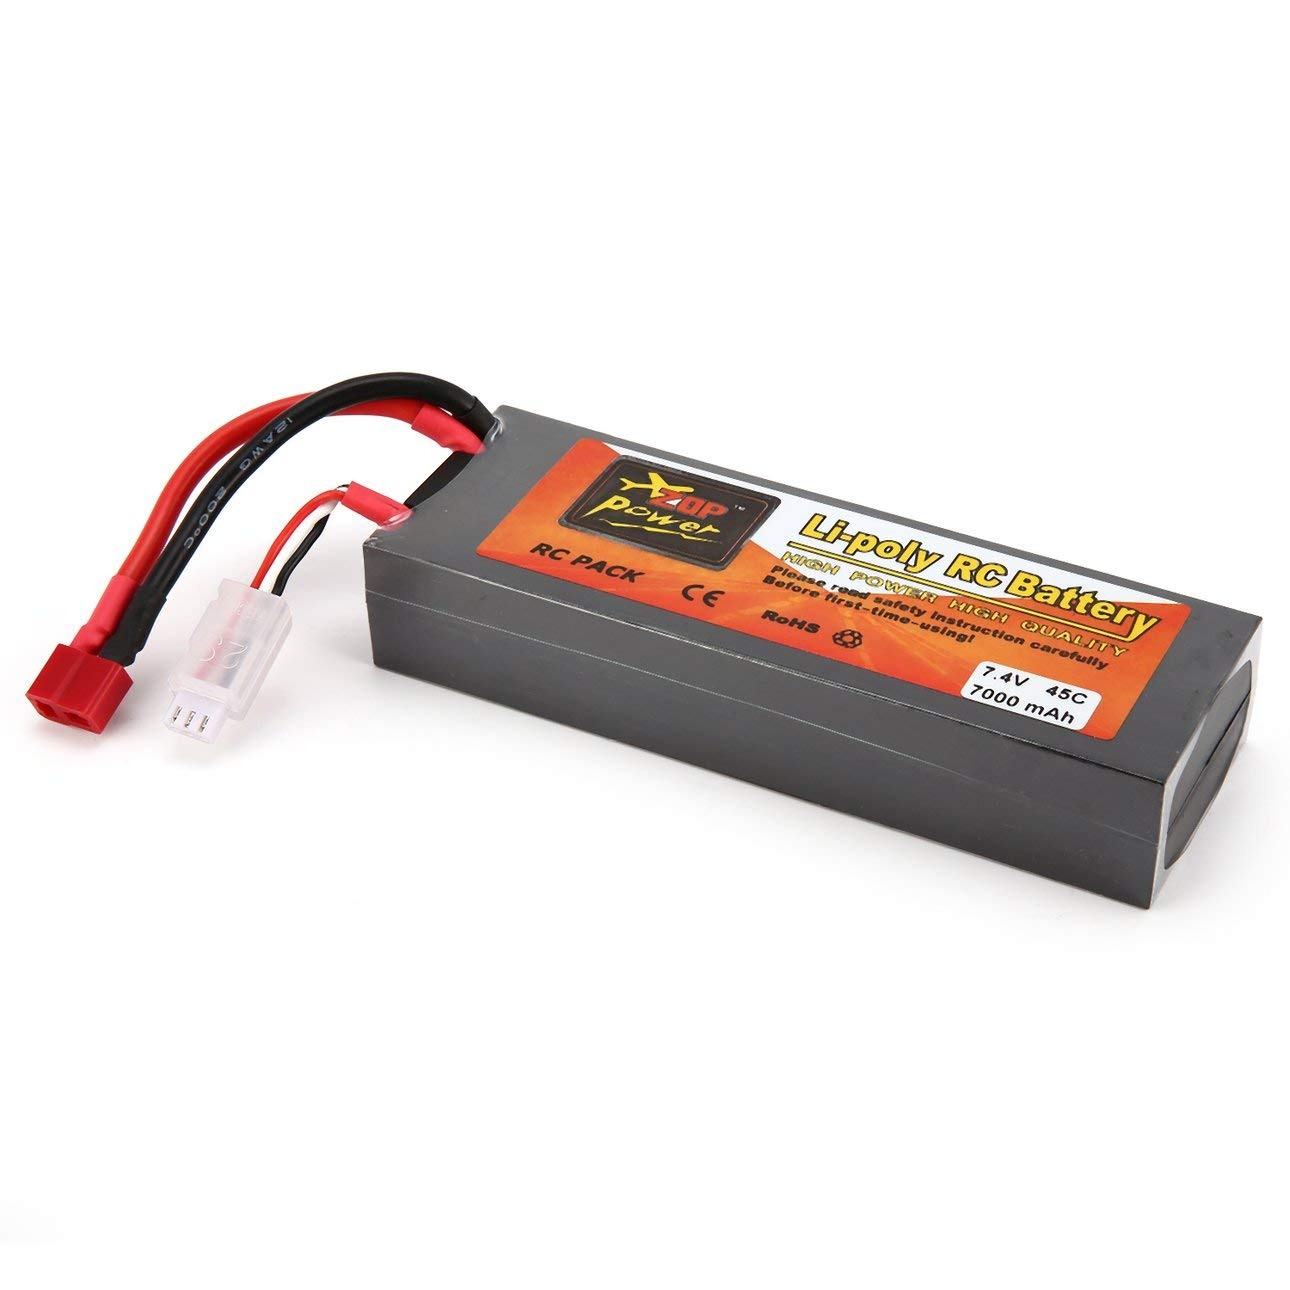 Liobaba 7.4V 7000mAh 45C 2S 1P Lipo Battery T Plug Rechargeable RC Racing Drone Quadcopter Helicopter Car Boat Model Dark-Gray